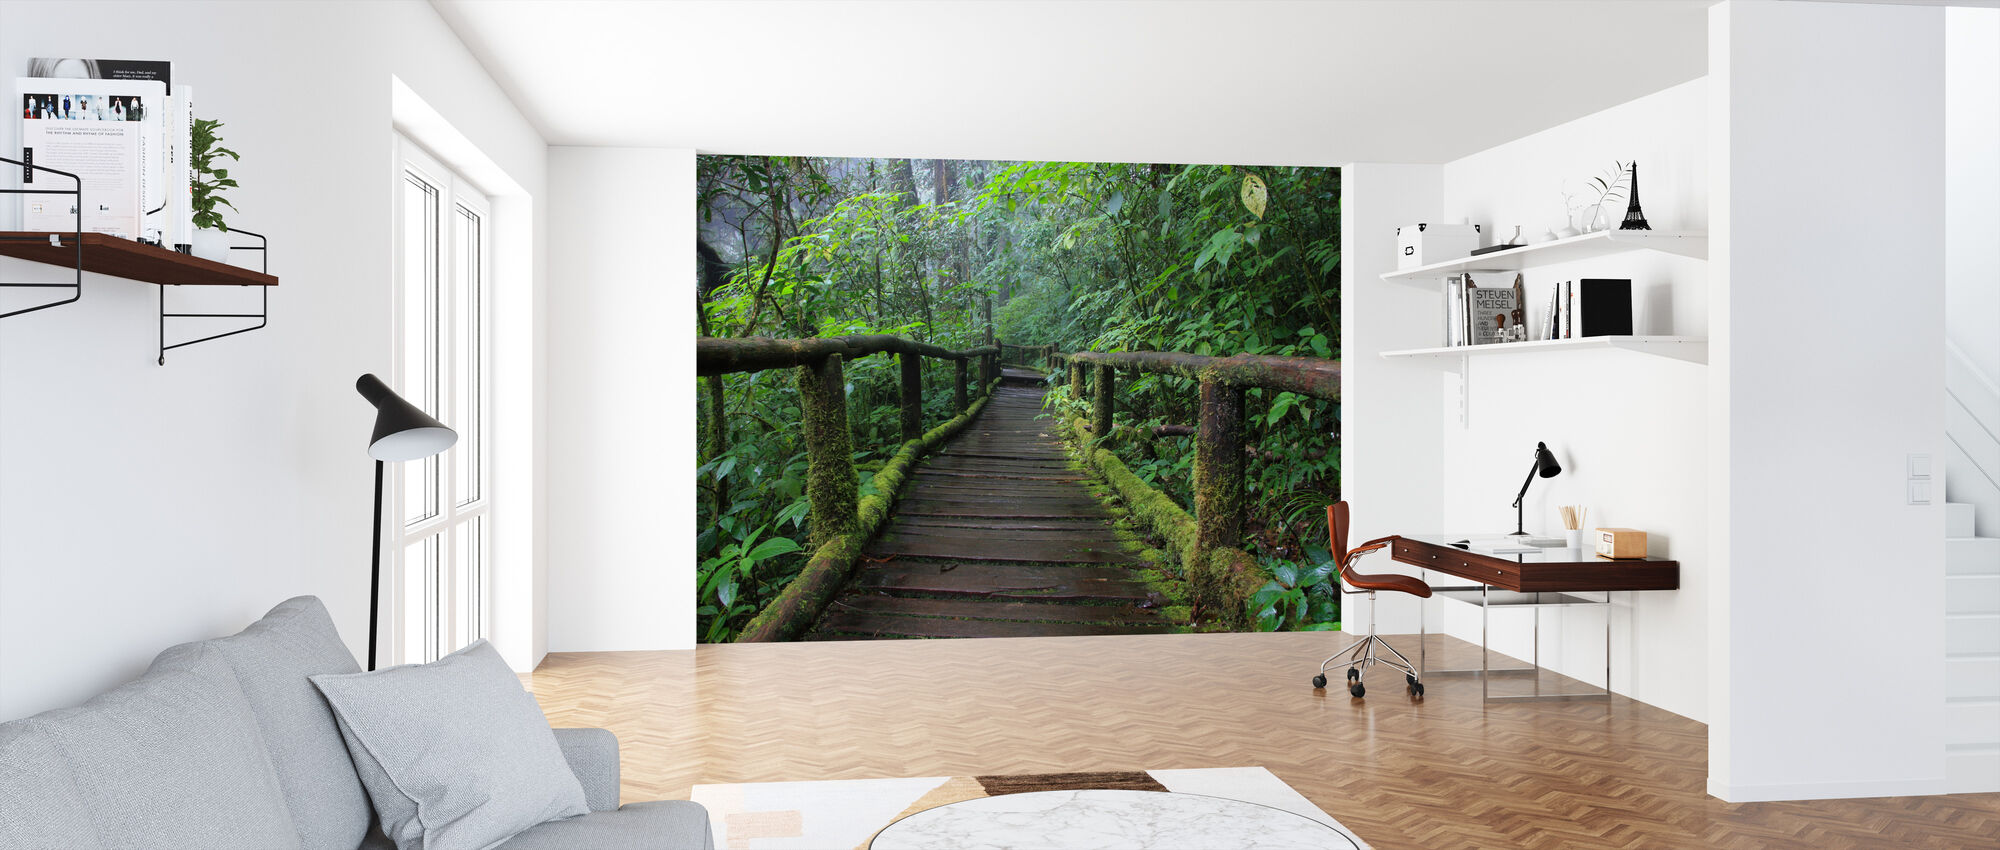 Beautiful Bridge in Thailand - Wallpaper - Office